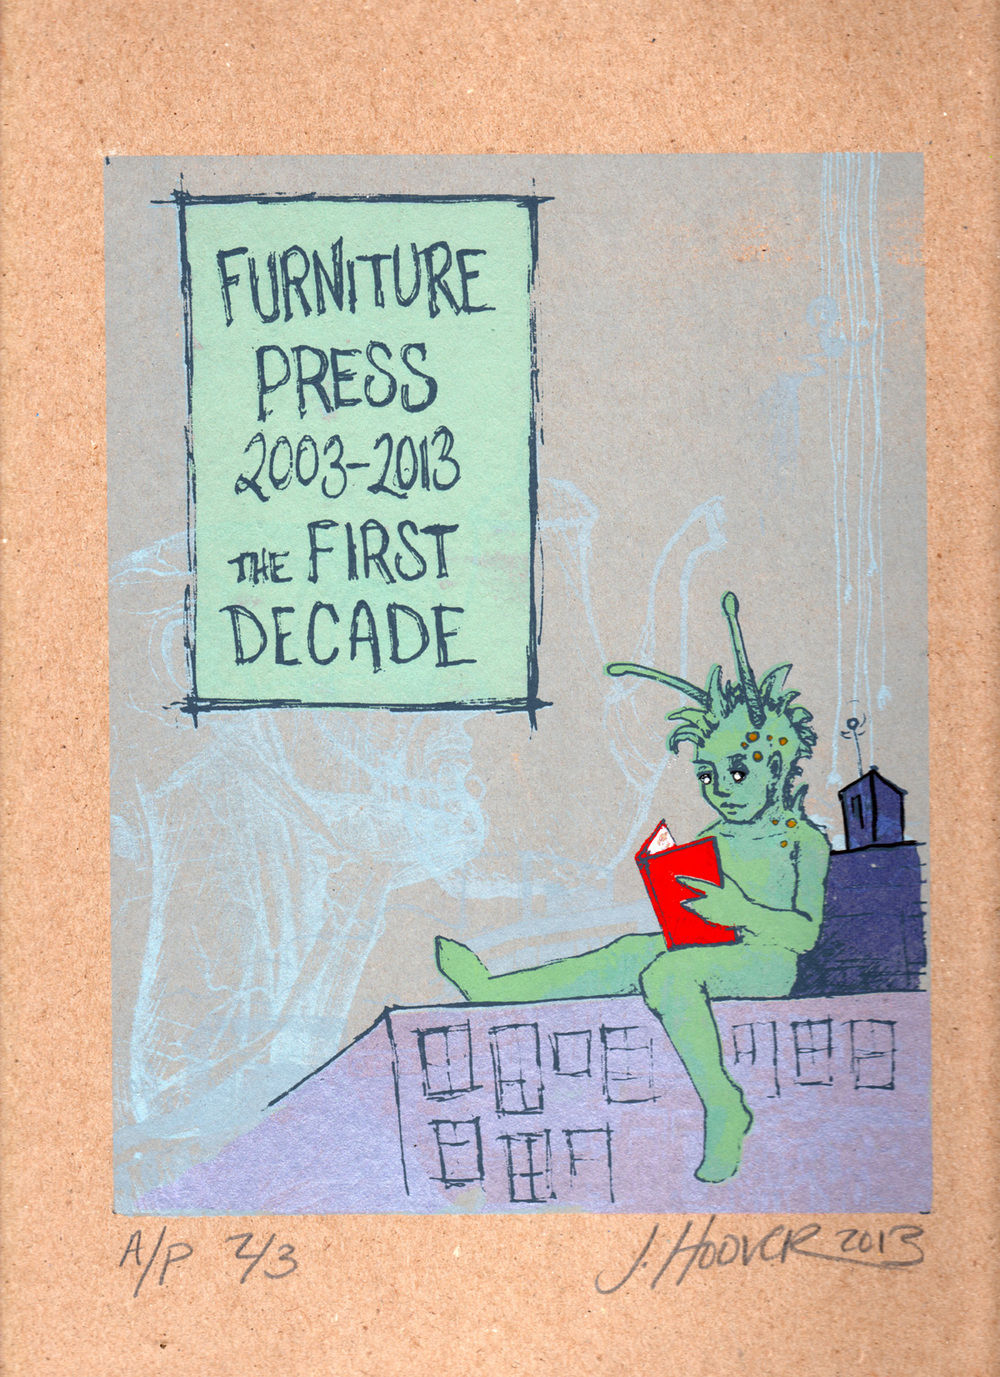 Furniture Press 10th Anniversary Broadside, 2013